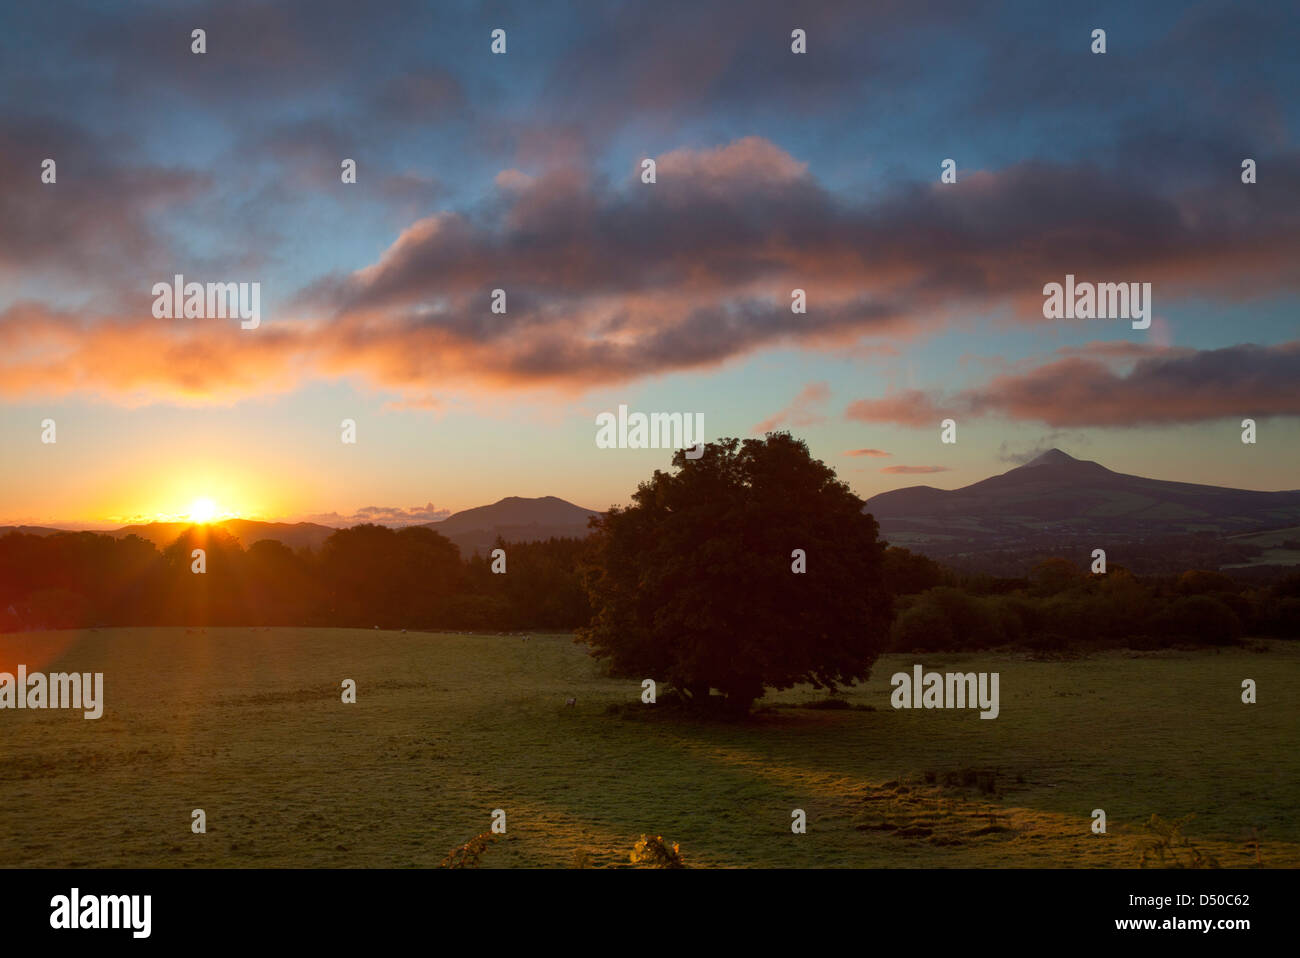 Dawn over Great Sugar Loaf mountain from Powerscourt Estate, County Wicklow, Ireland. Stock Photo